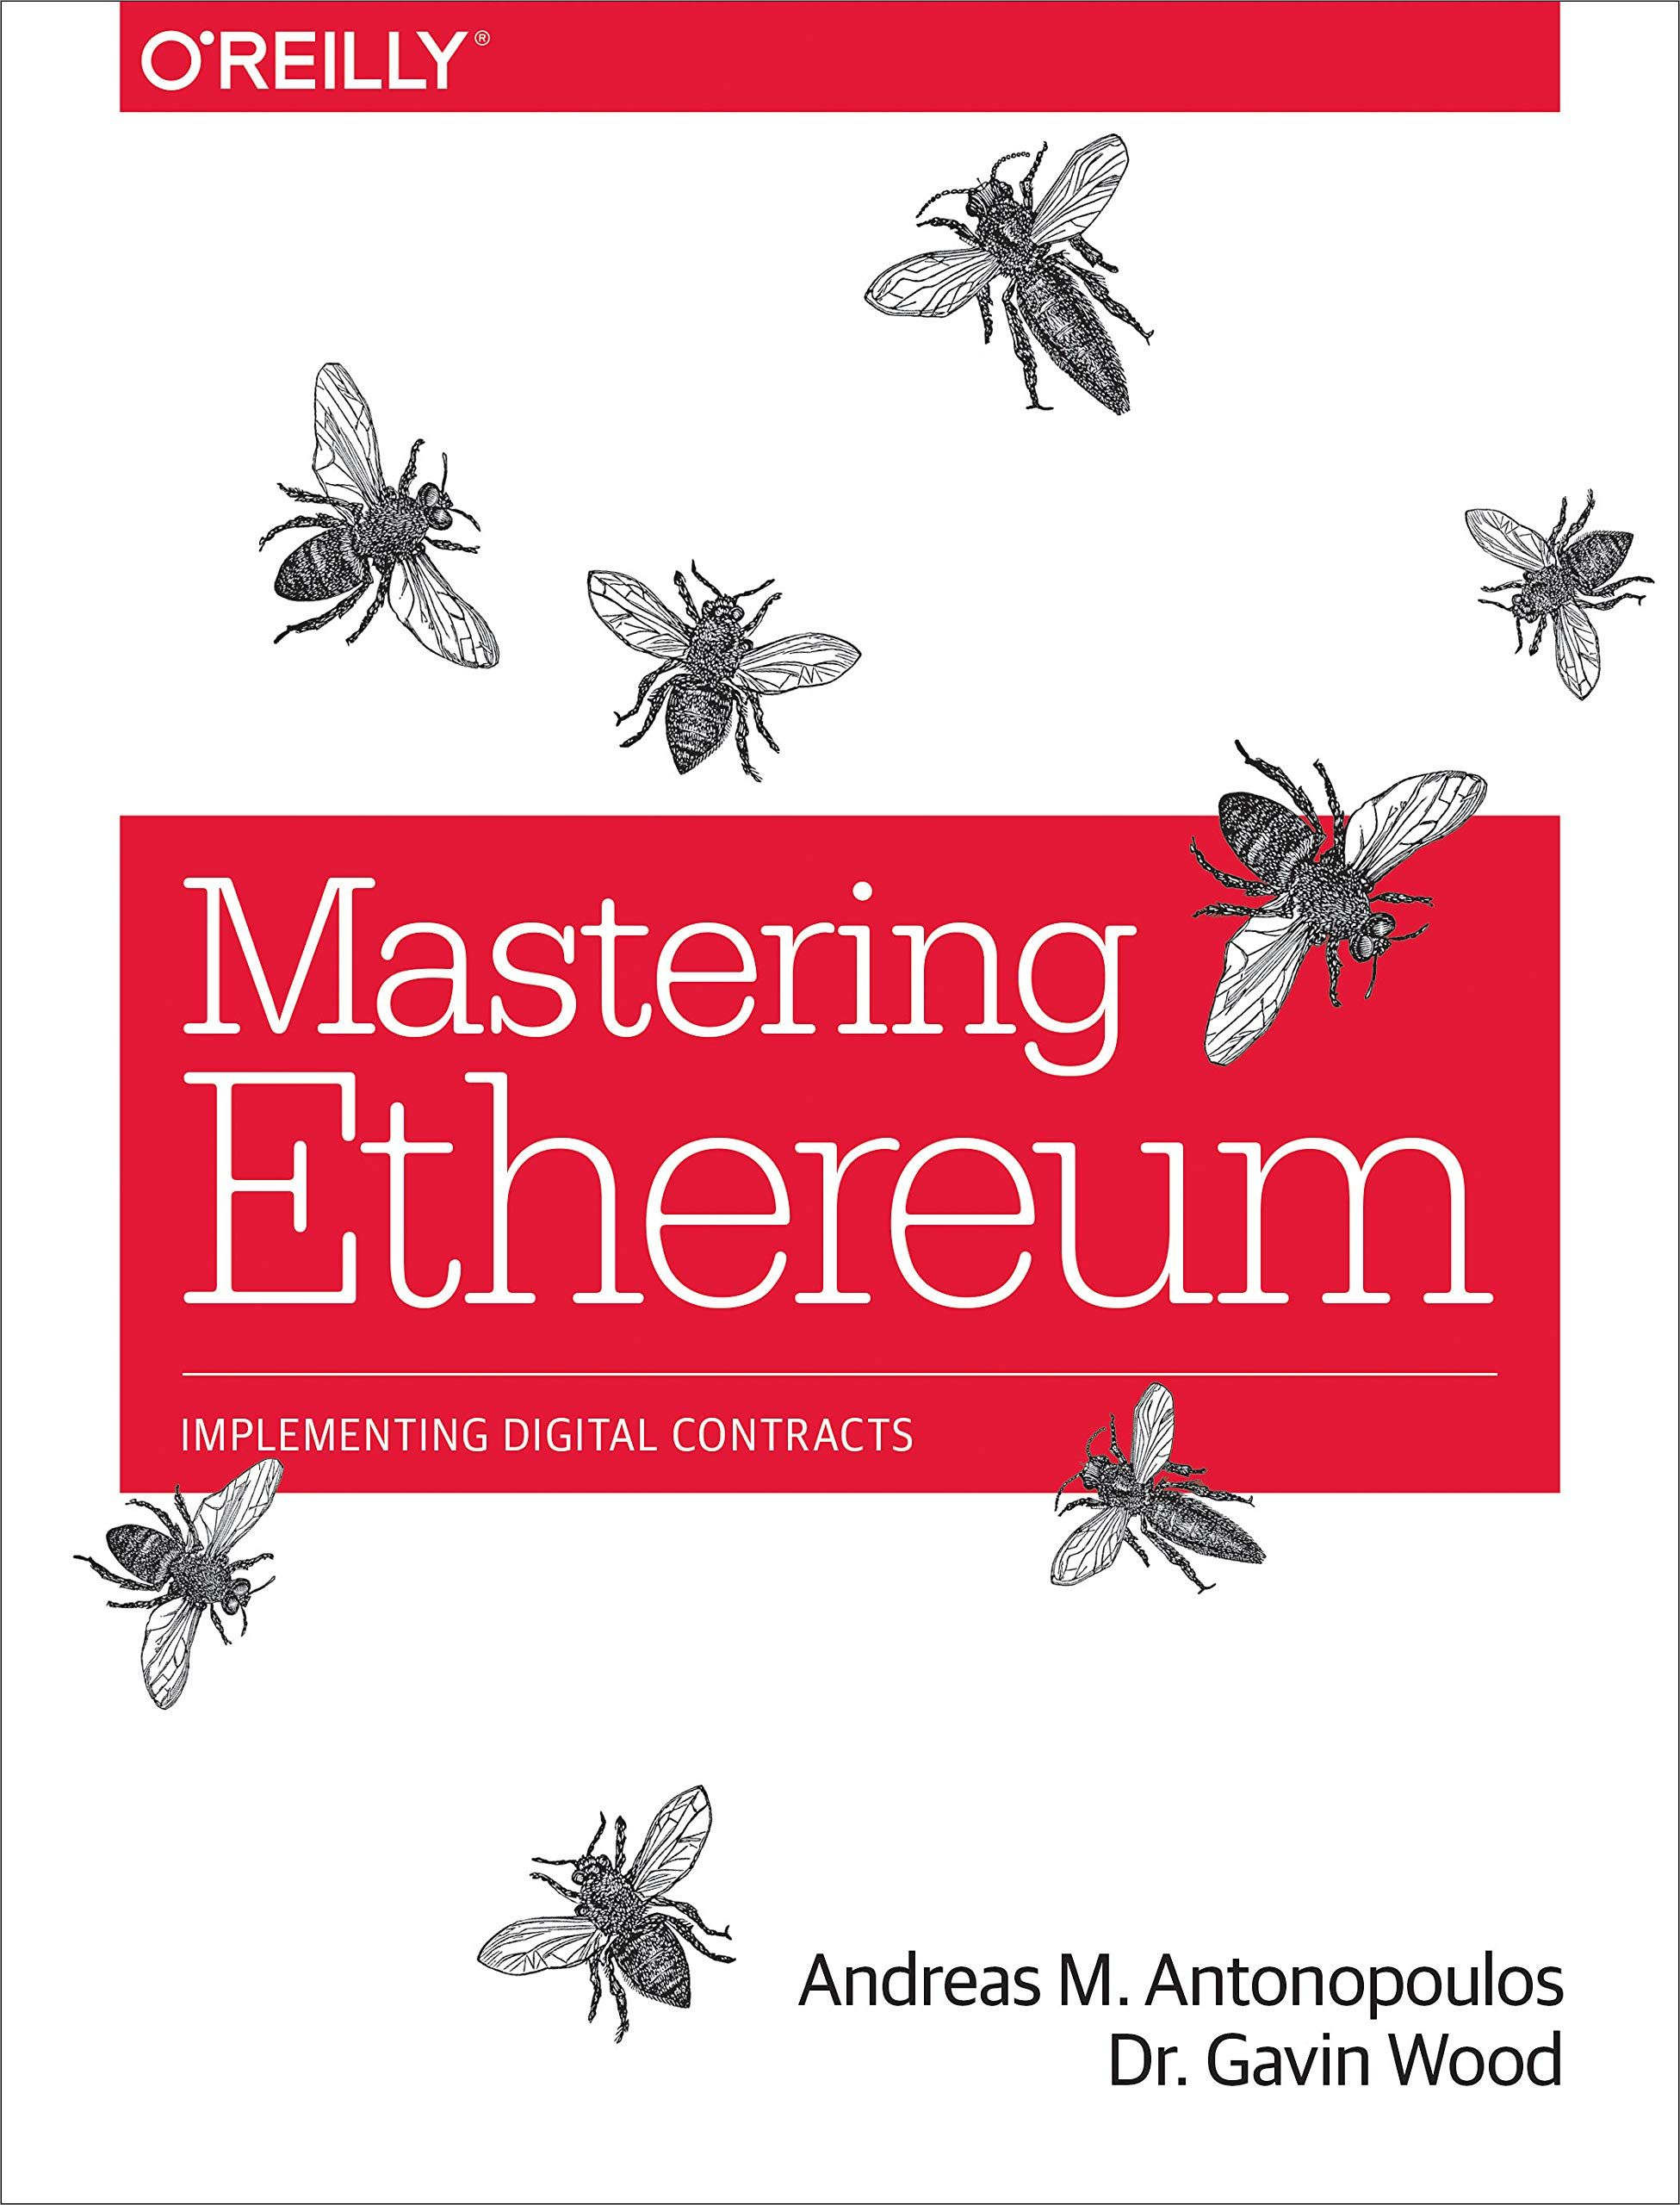 Solidity Educational Resources will Help You Get a Job - Mastering Ethereum